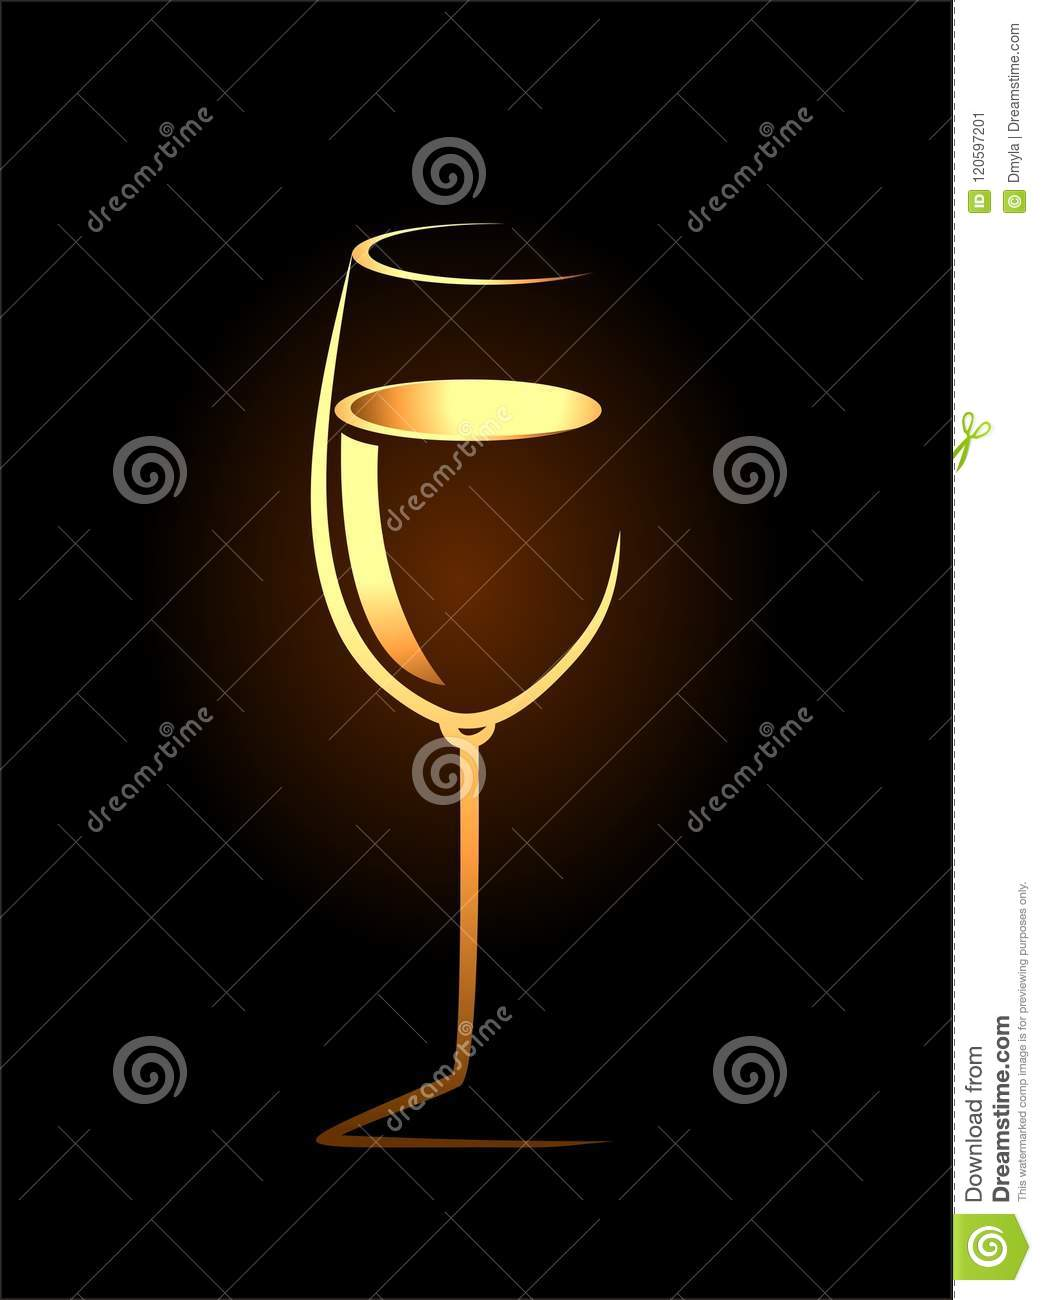 Sketch of isolated wine glass